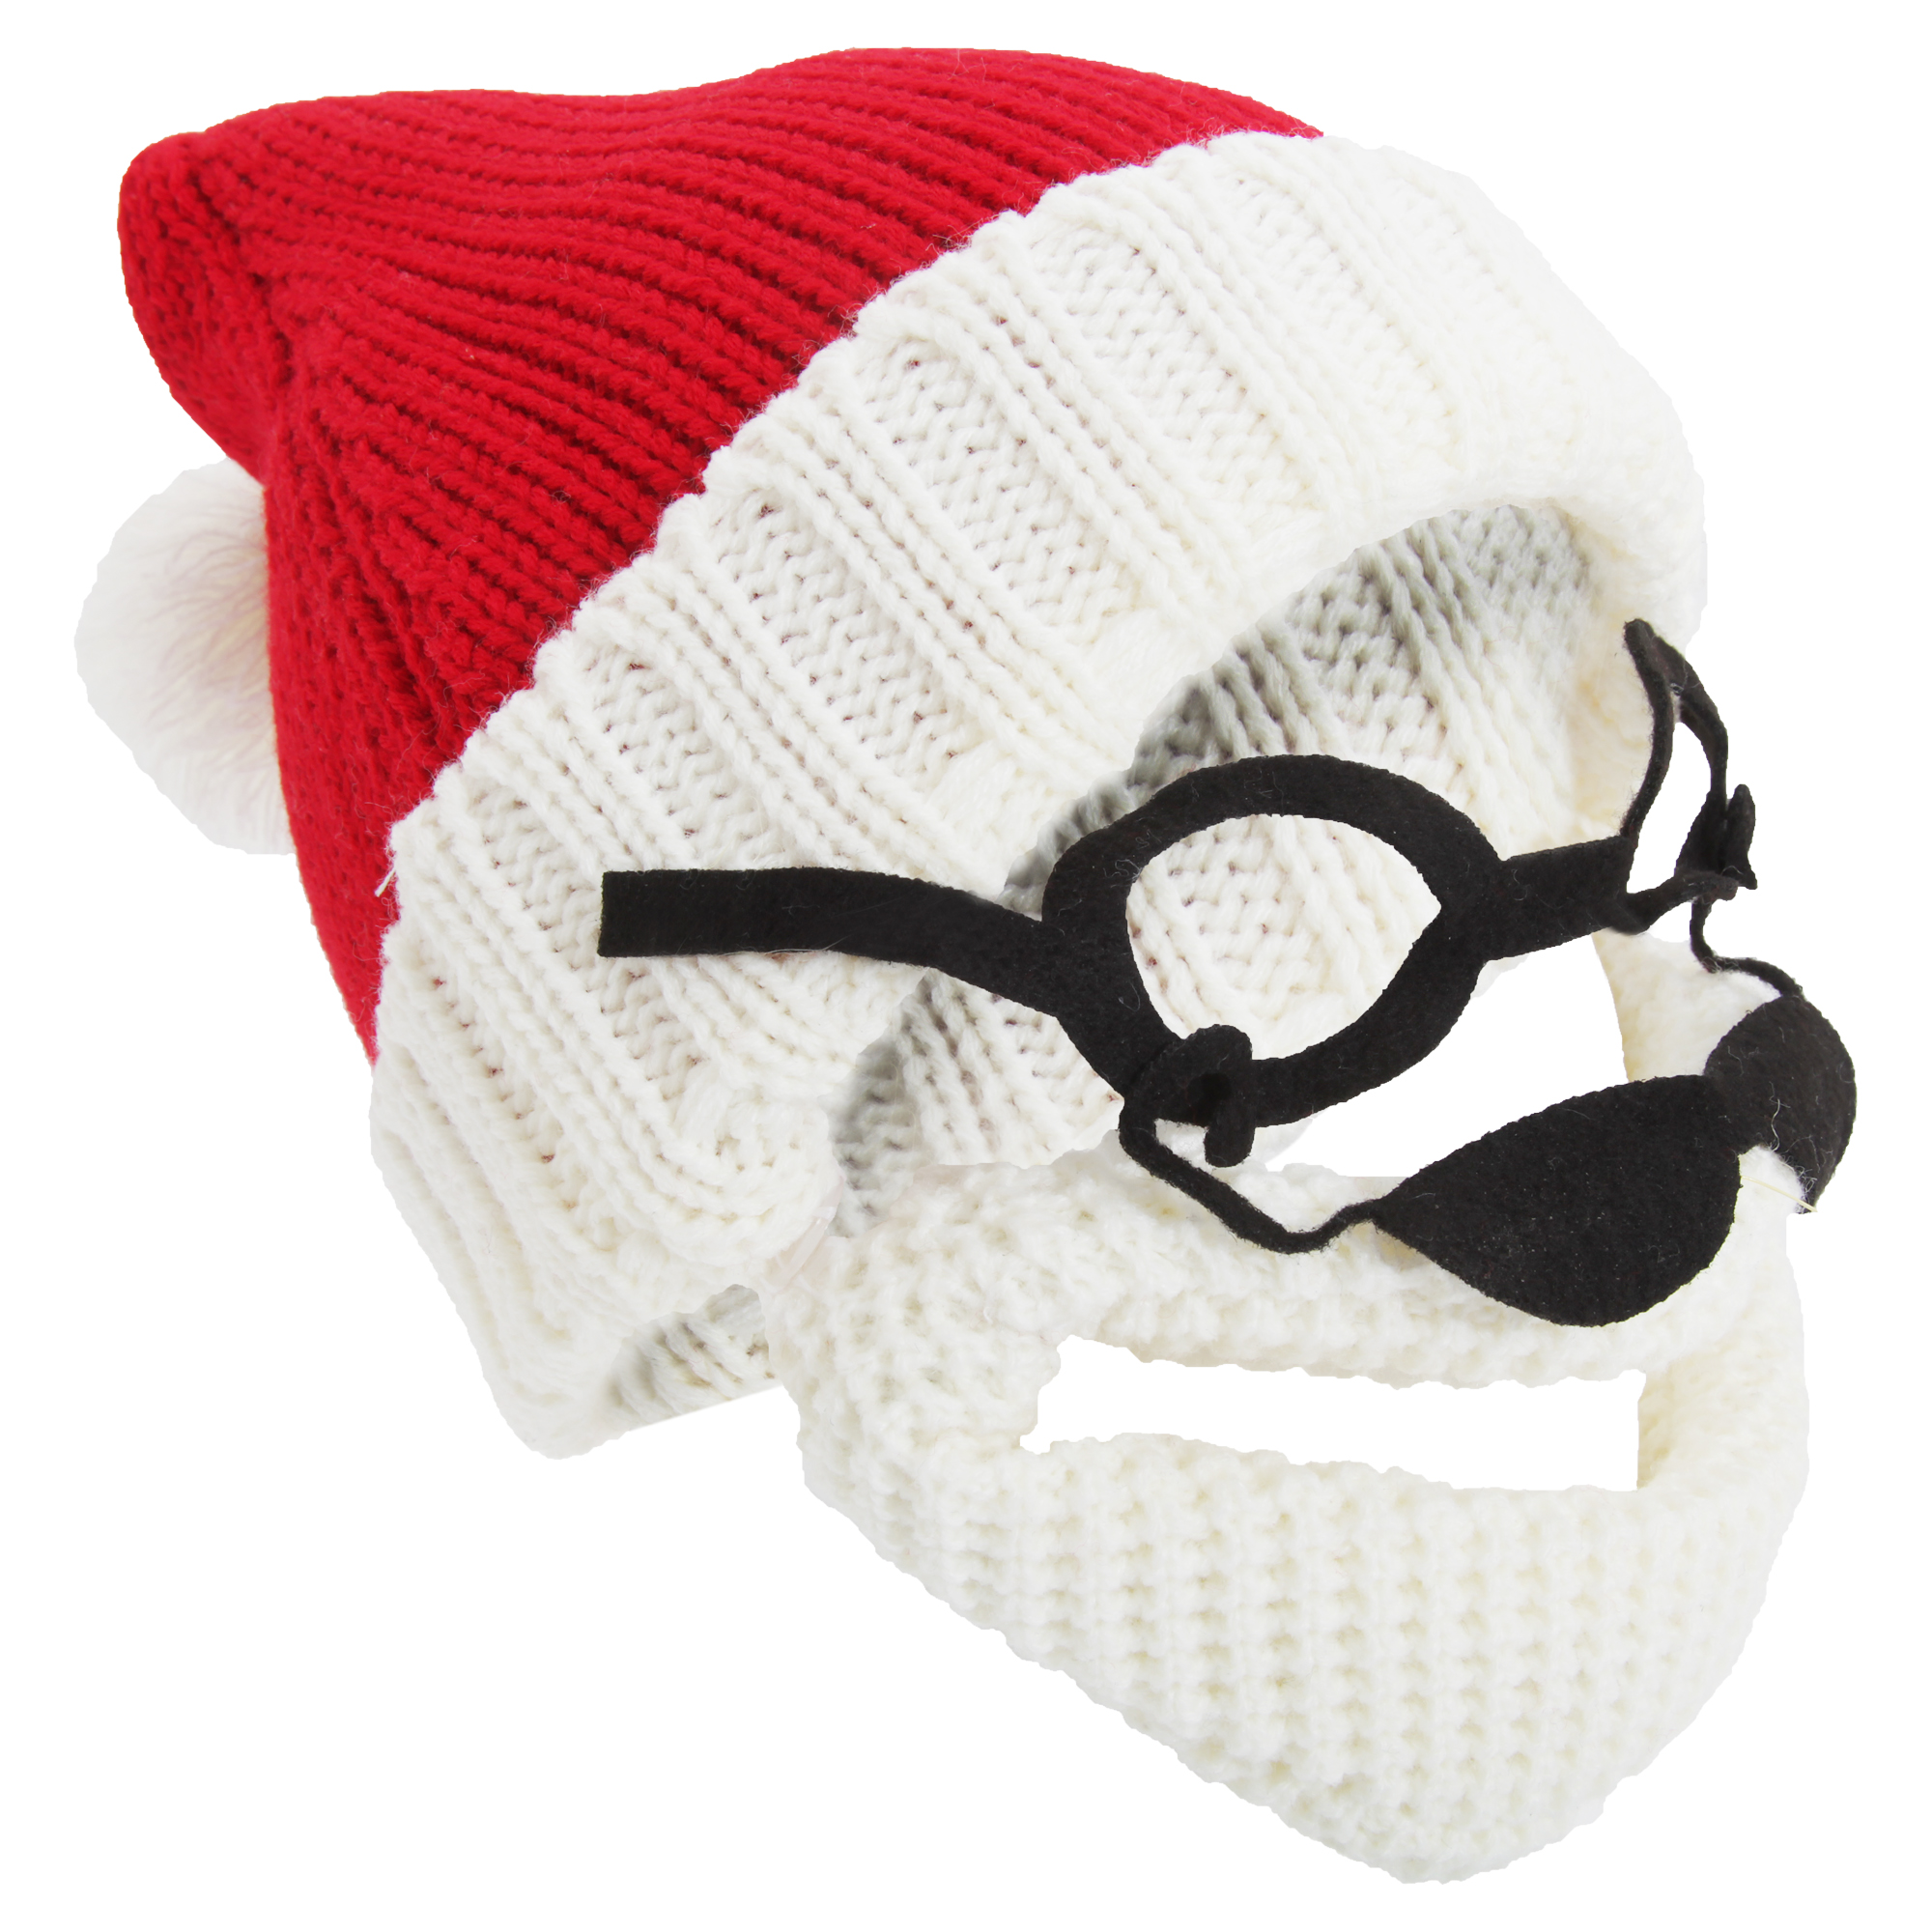 HA479 Mens Knitted Santa Claus Christmas Hat With Glasses /& Detachable Beard